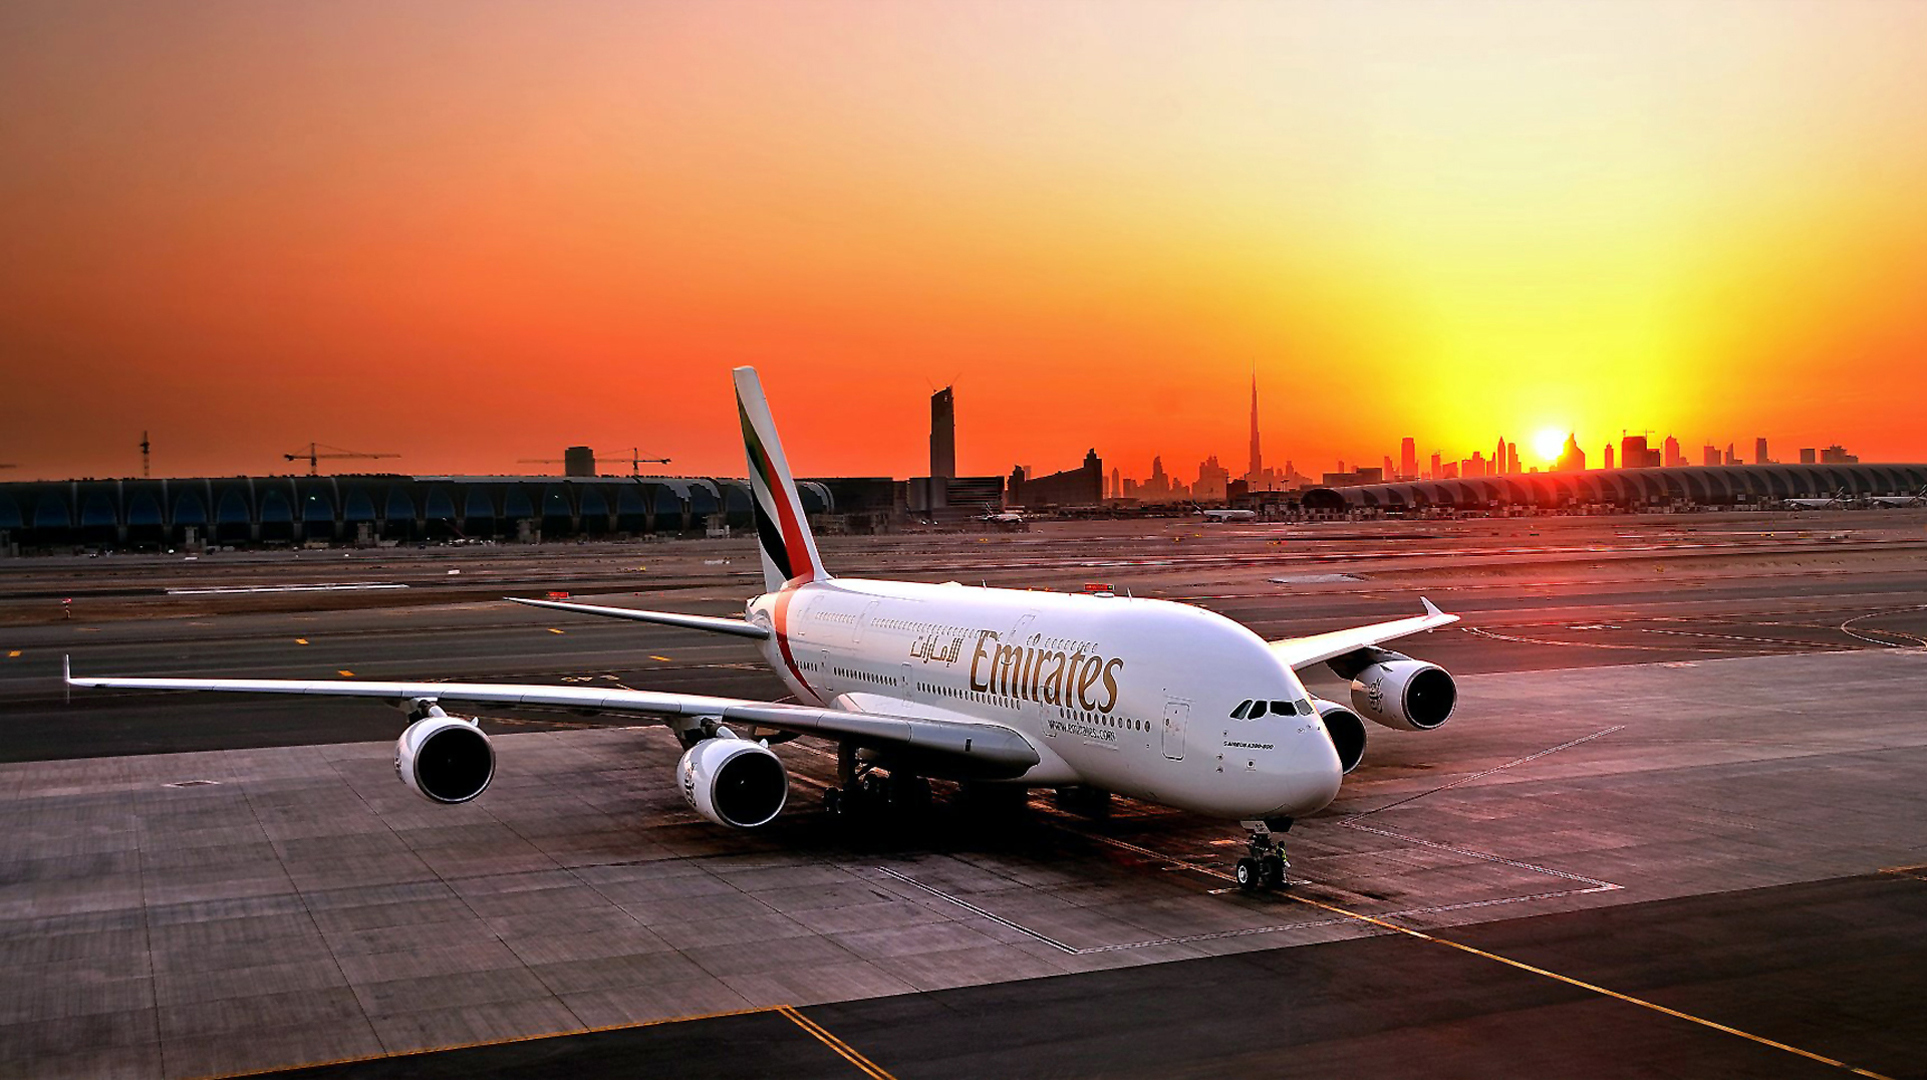 Wallpaper of Airbus A380 Emirates Airline 1927x1080